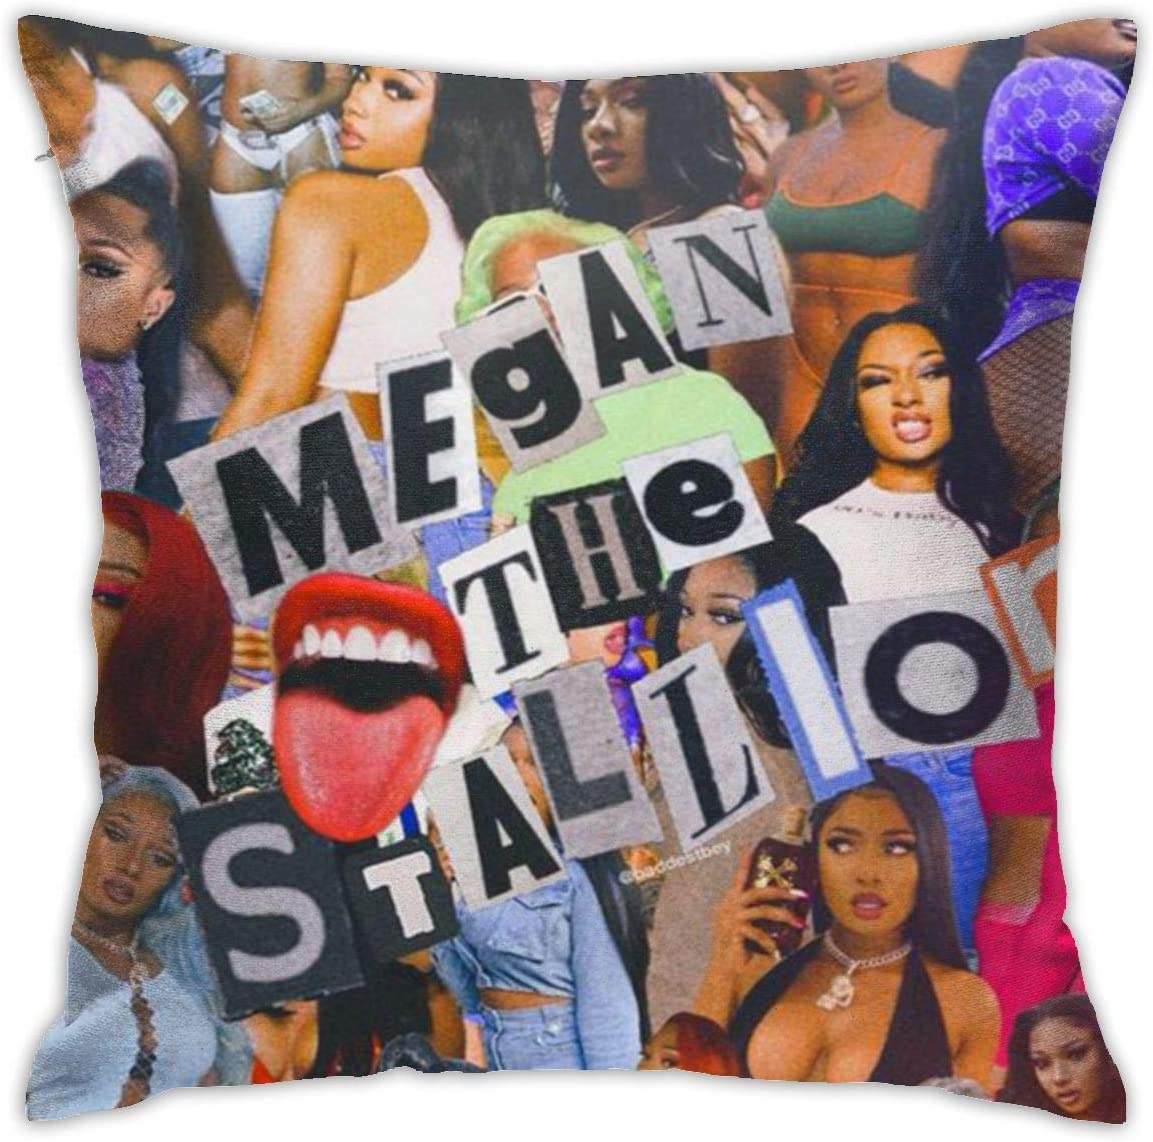 JINZH Megan Thee Stallion Decorate Bed Pillowcase Comfort for Men Women Teens Home Car Cushion Cover